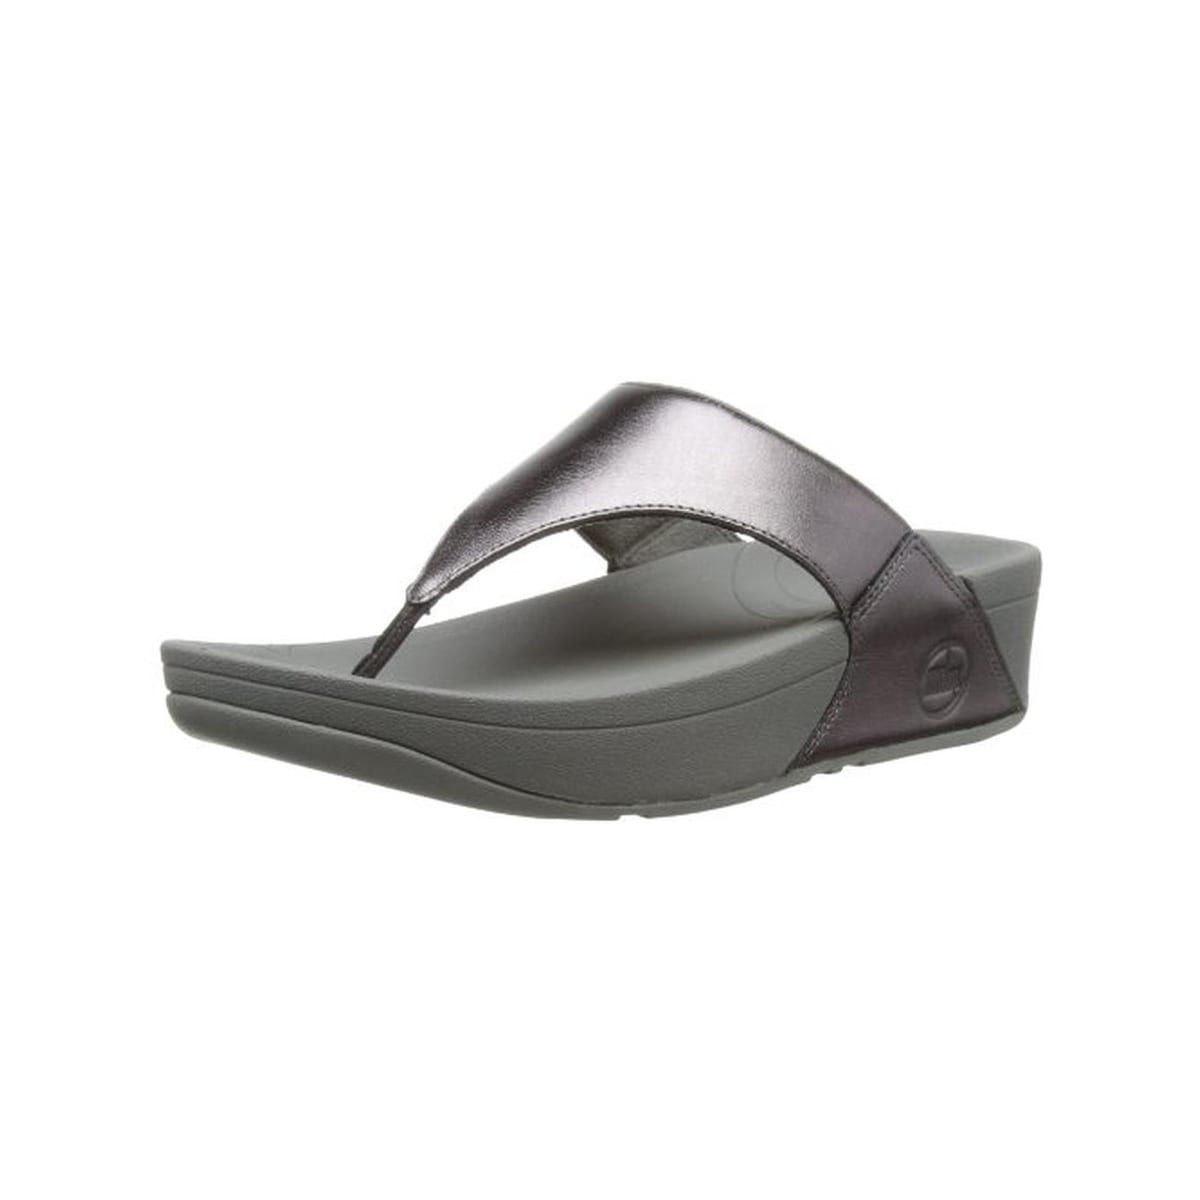 28bd6825f6c9b Buy FitFlop Women s Sandals Online at Overstock